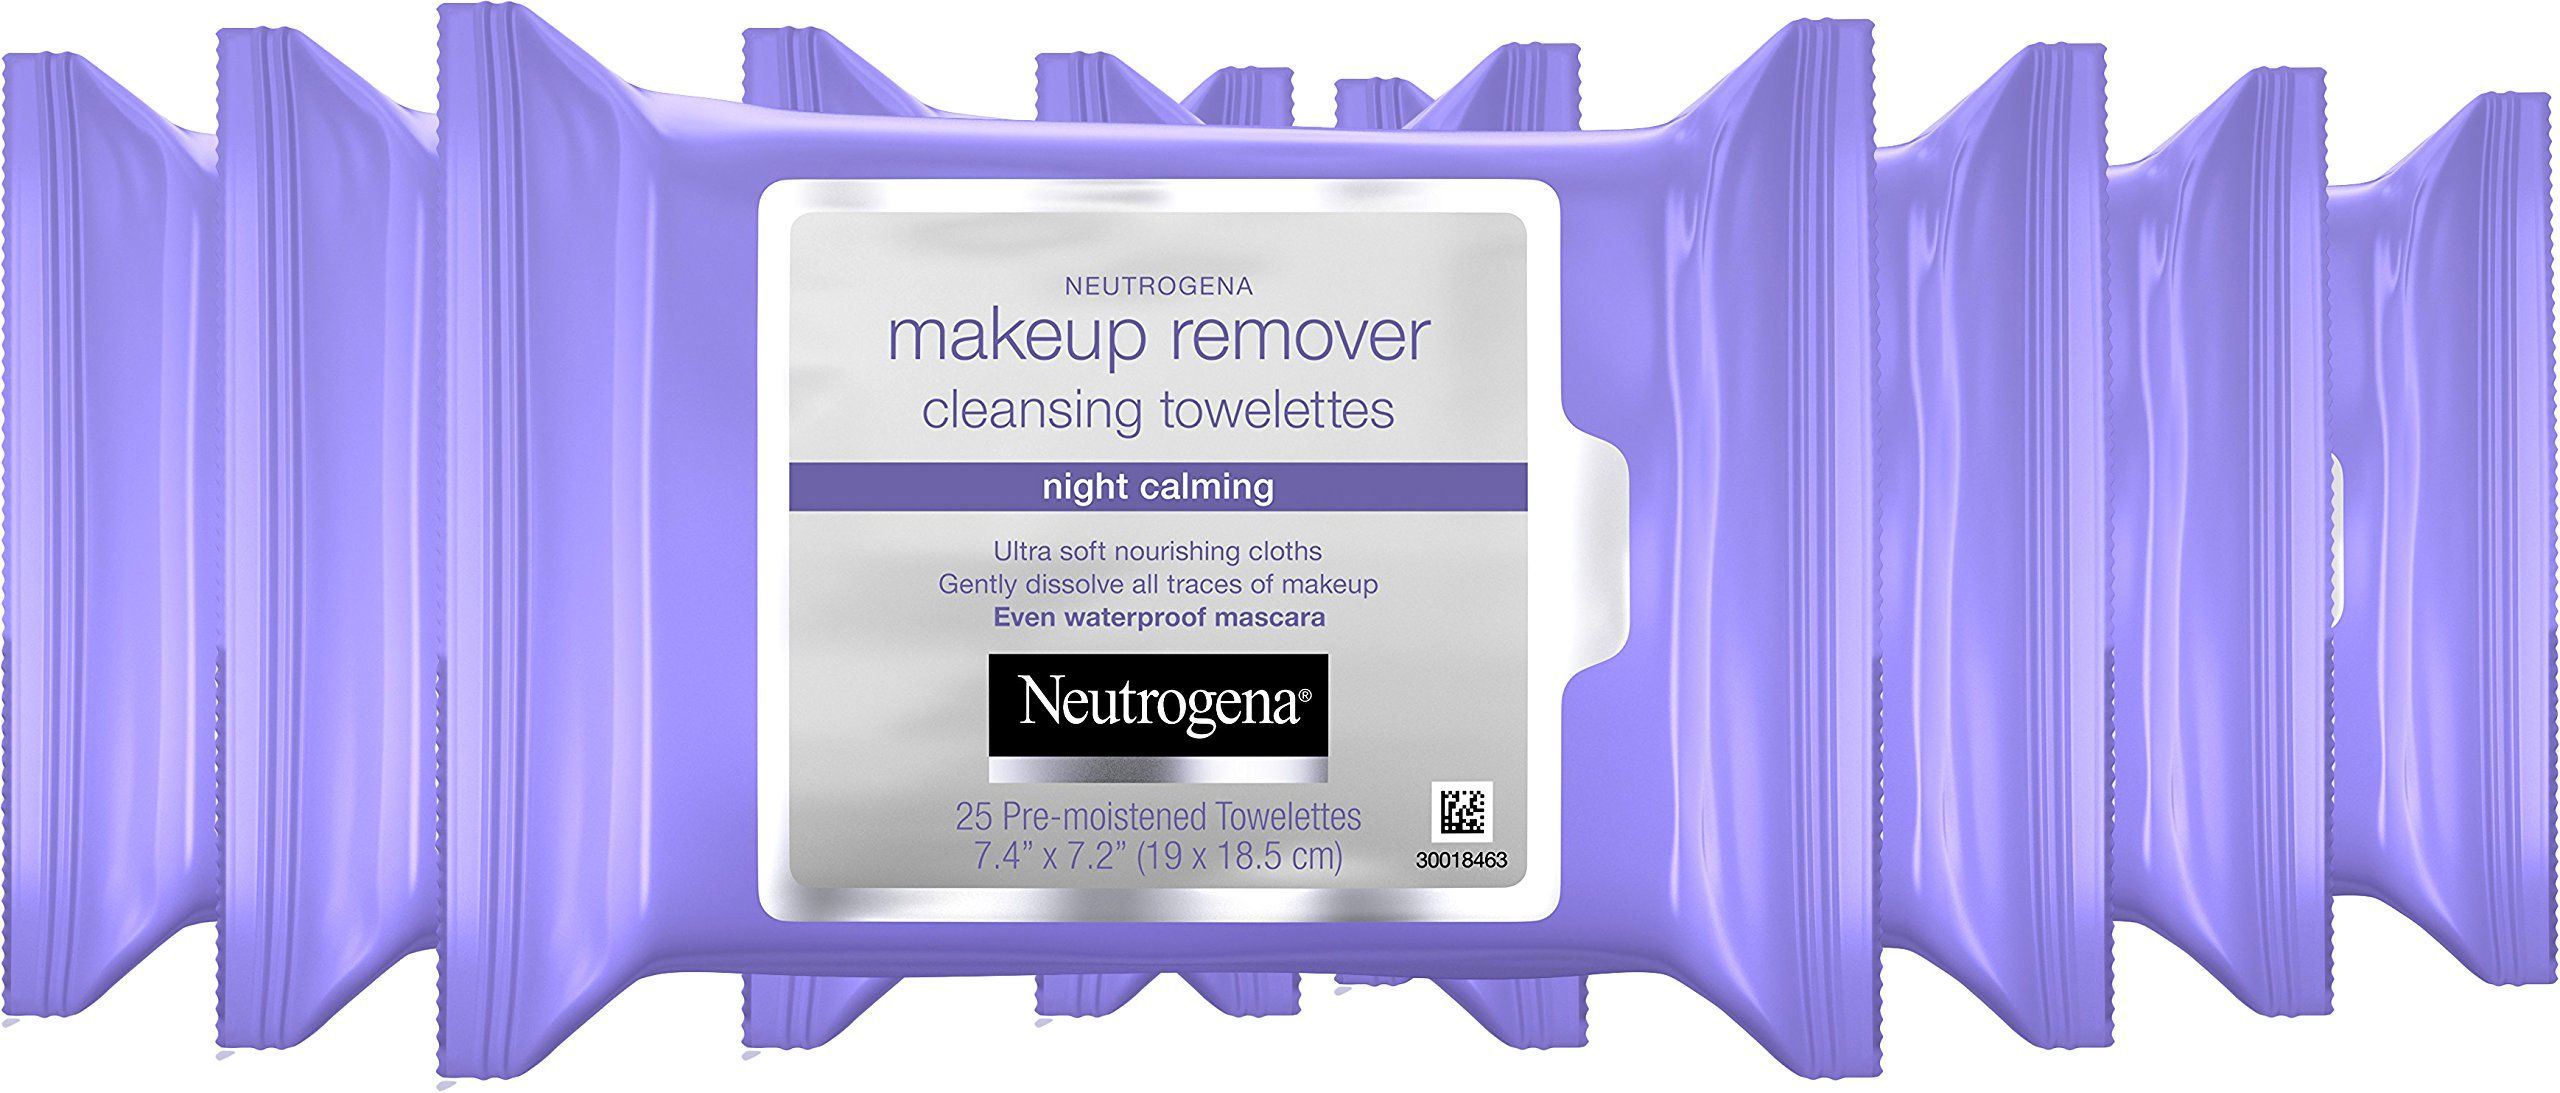 Neutrogena Makeup Remover Cleansing Towelettes and Wipes